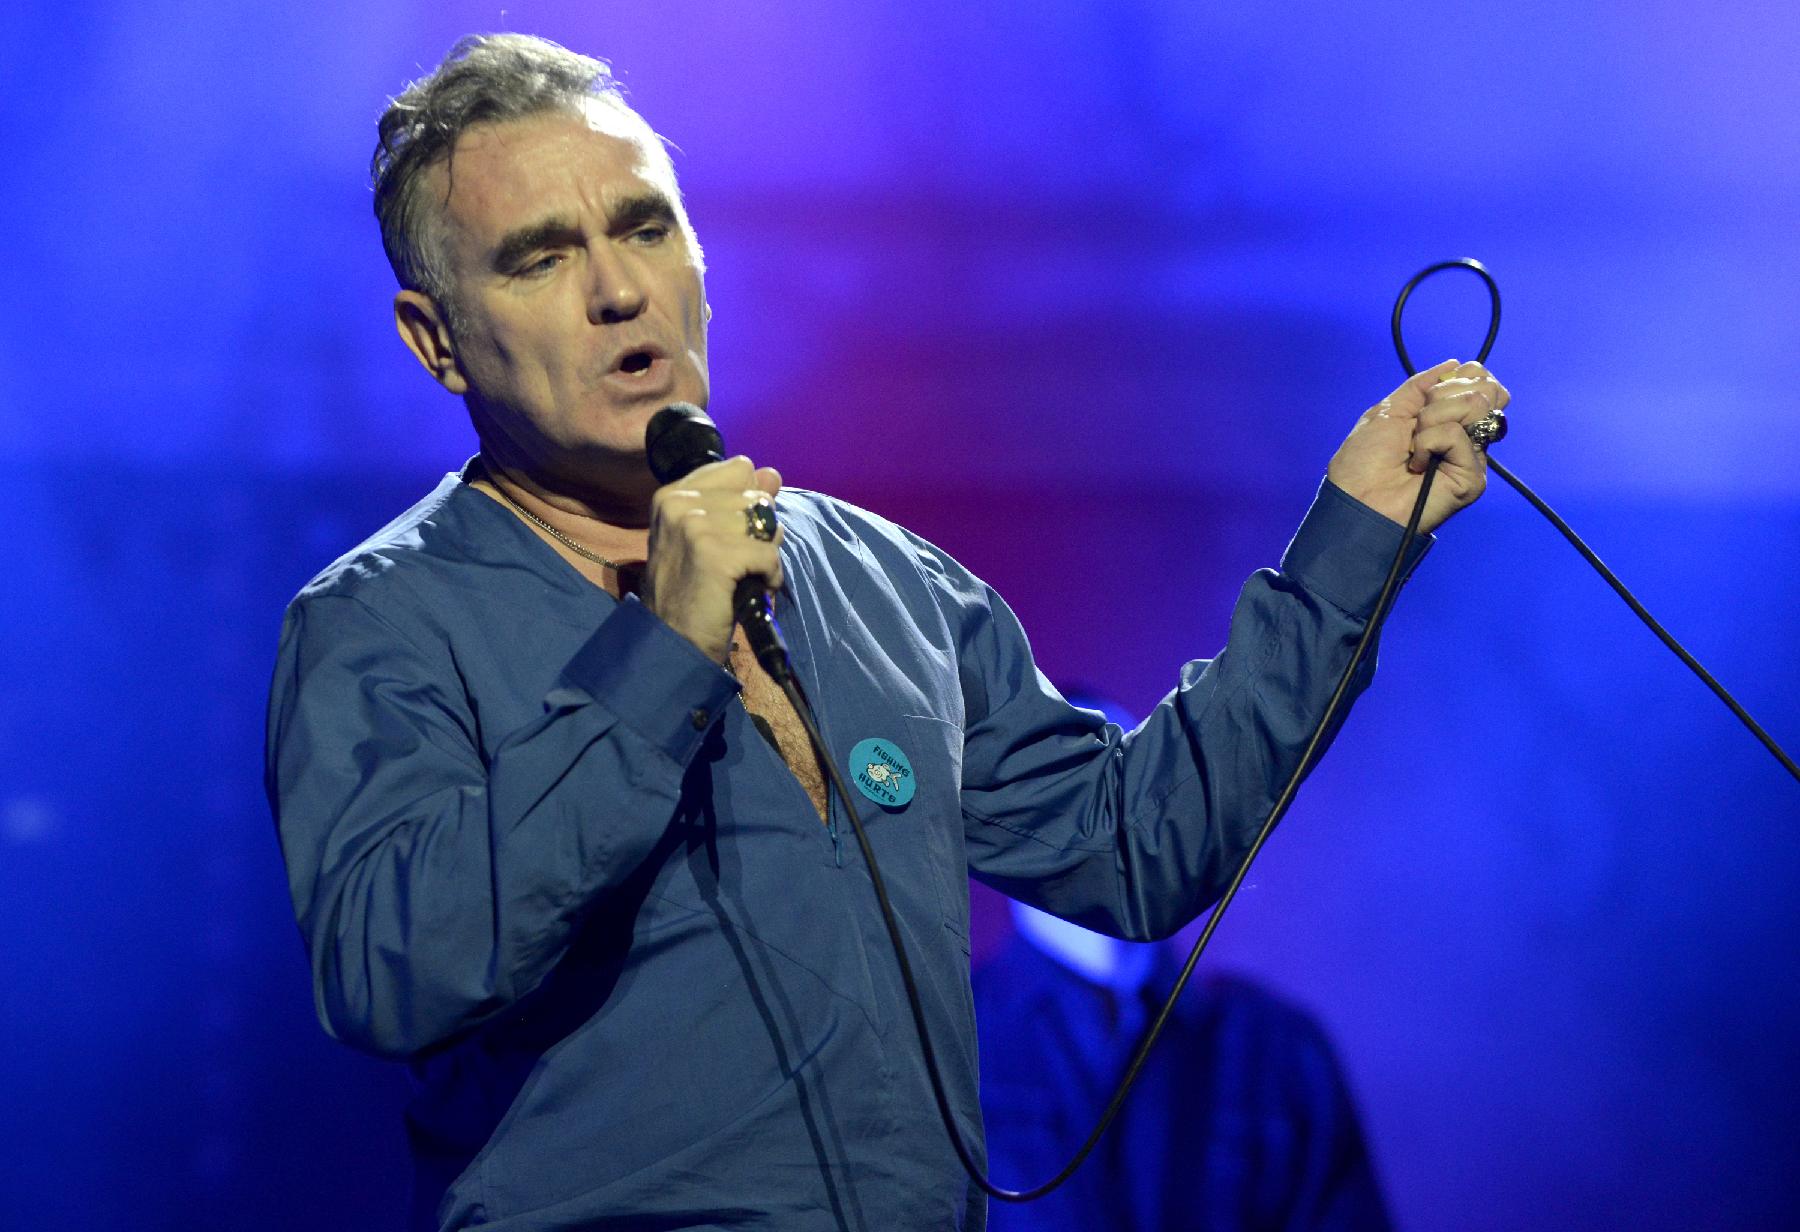 Morrissey's Tour Launch Features New Songs, Stage-Invading Fans